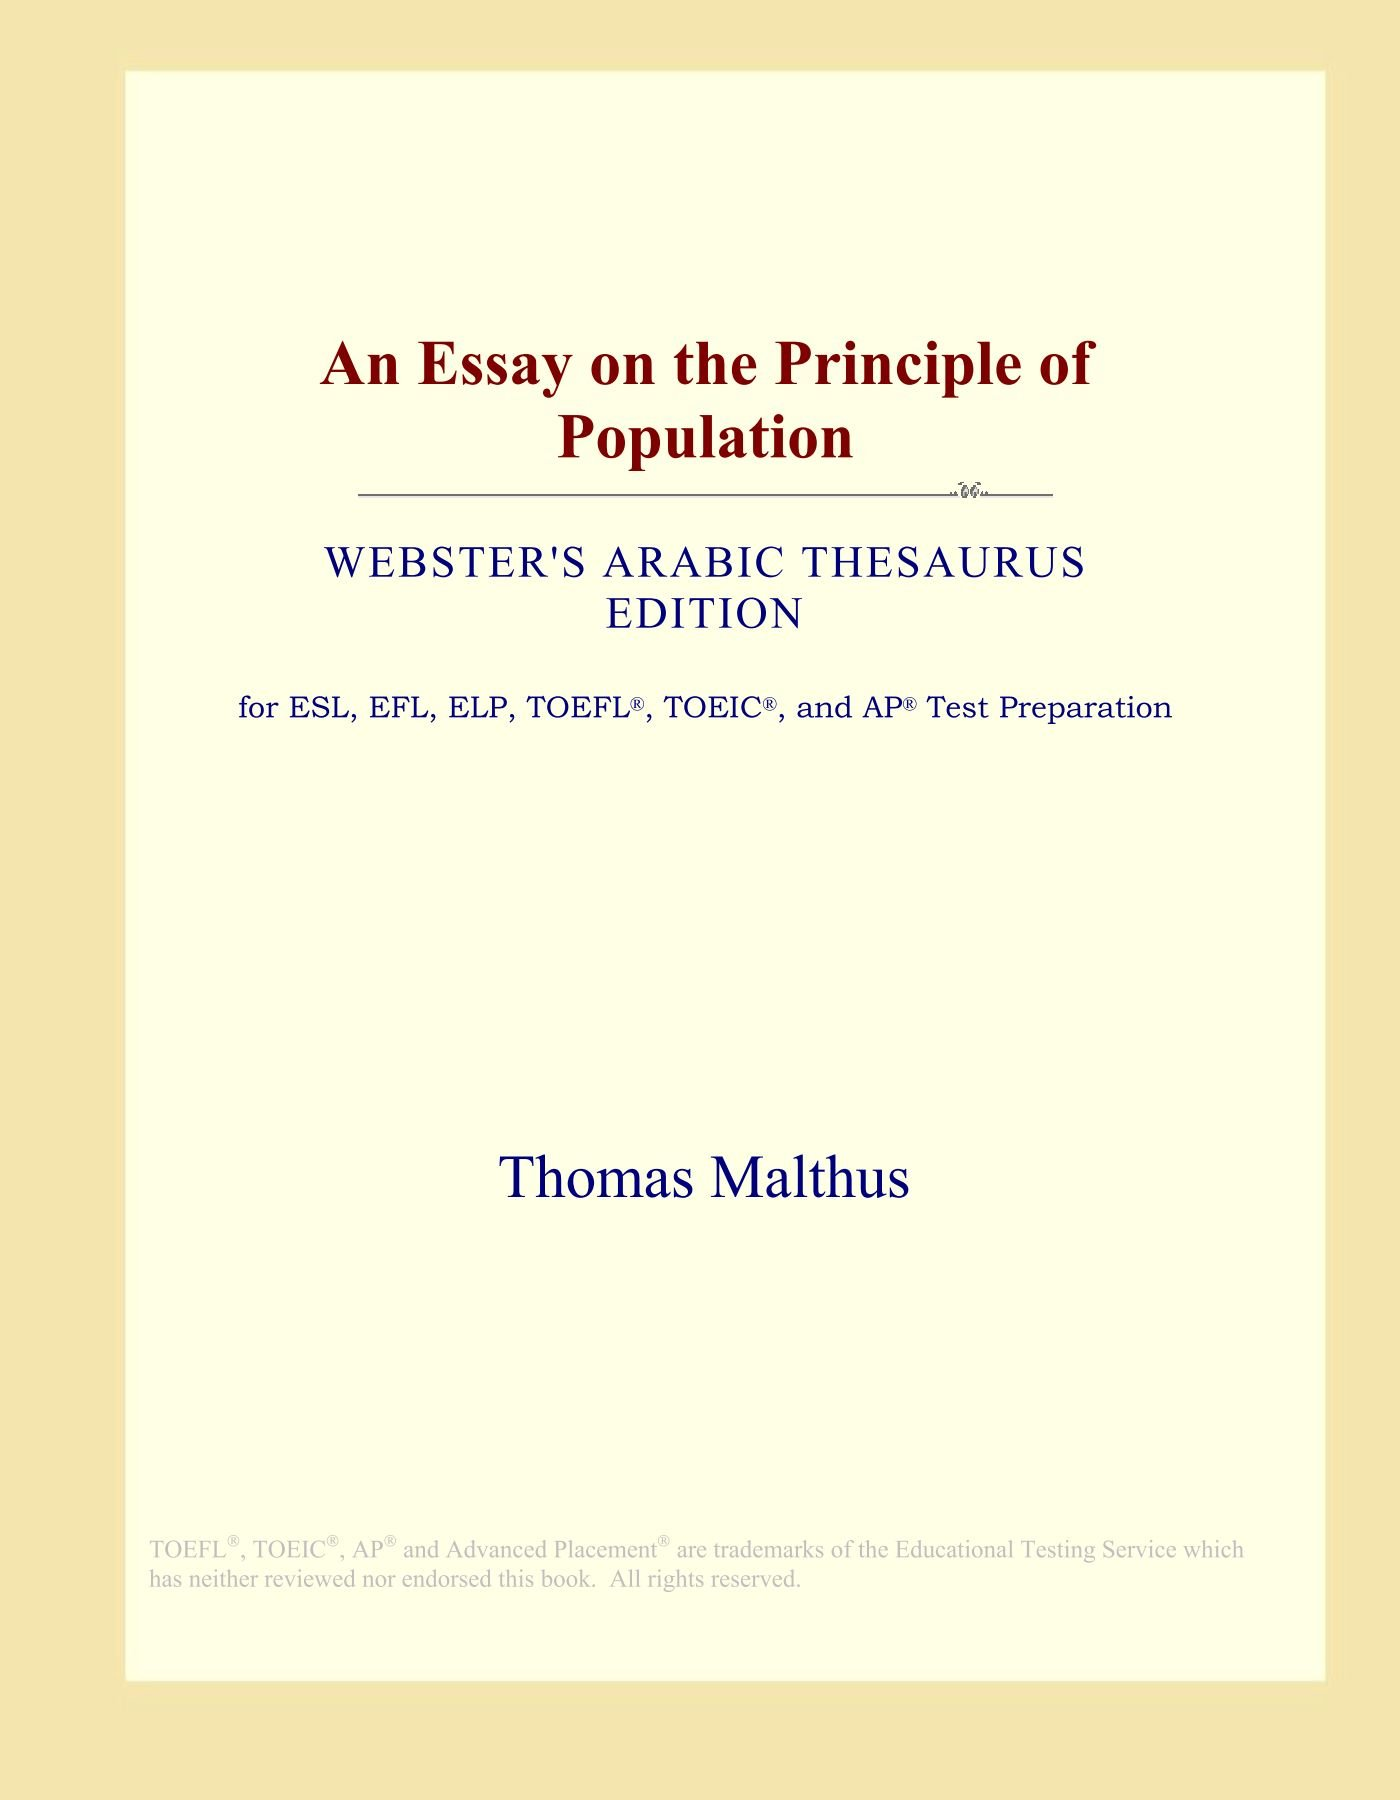 015 61groeunvgl Essay On The Principle Of Population Singular Thomas Malthus Sparknotes Advocated Ap Euro Full